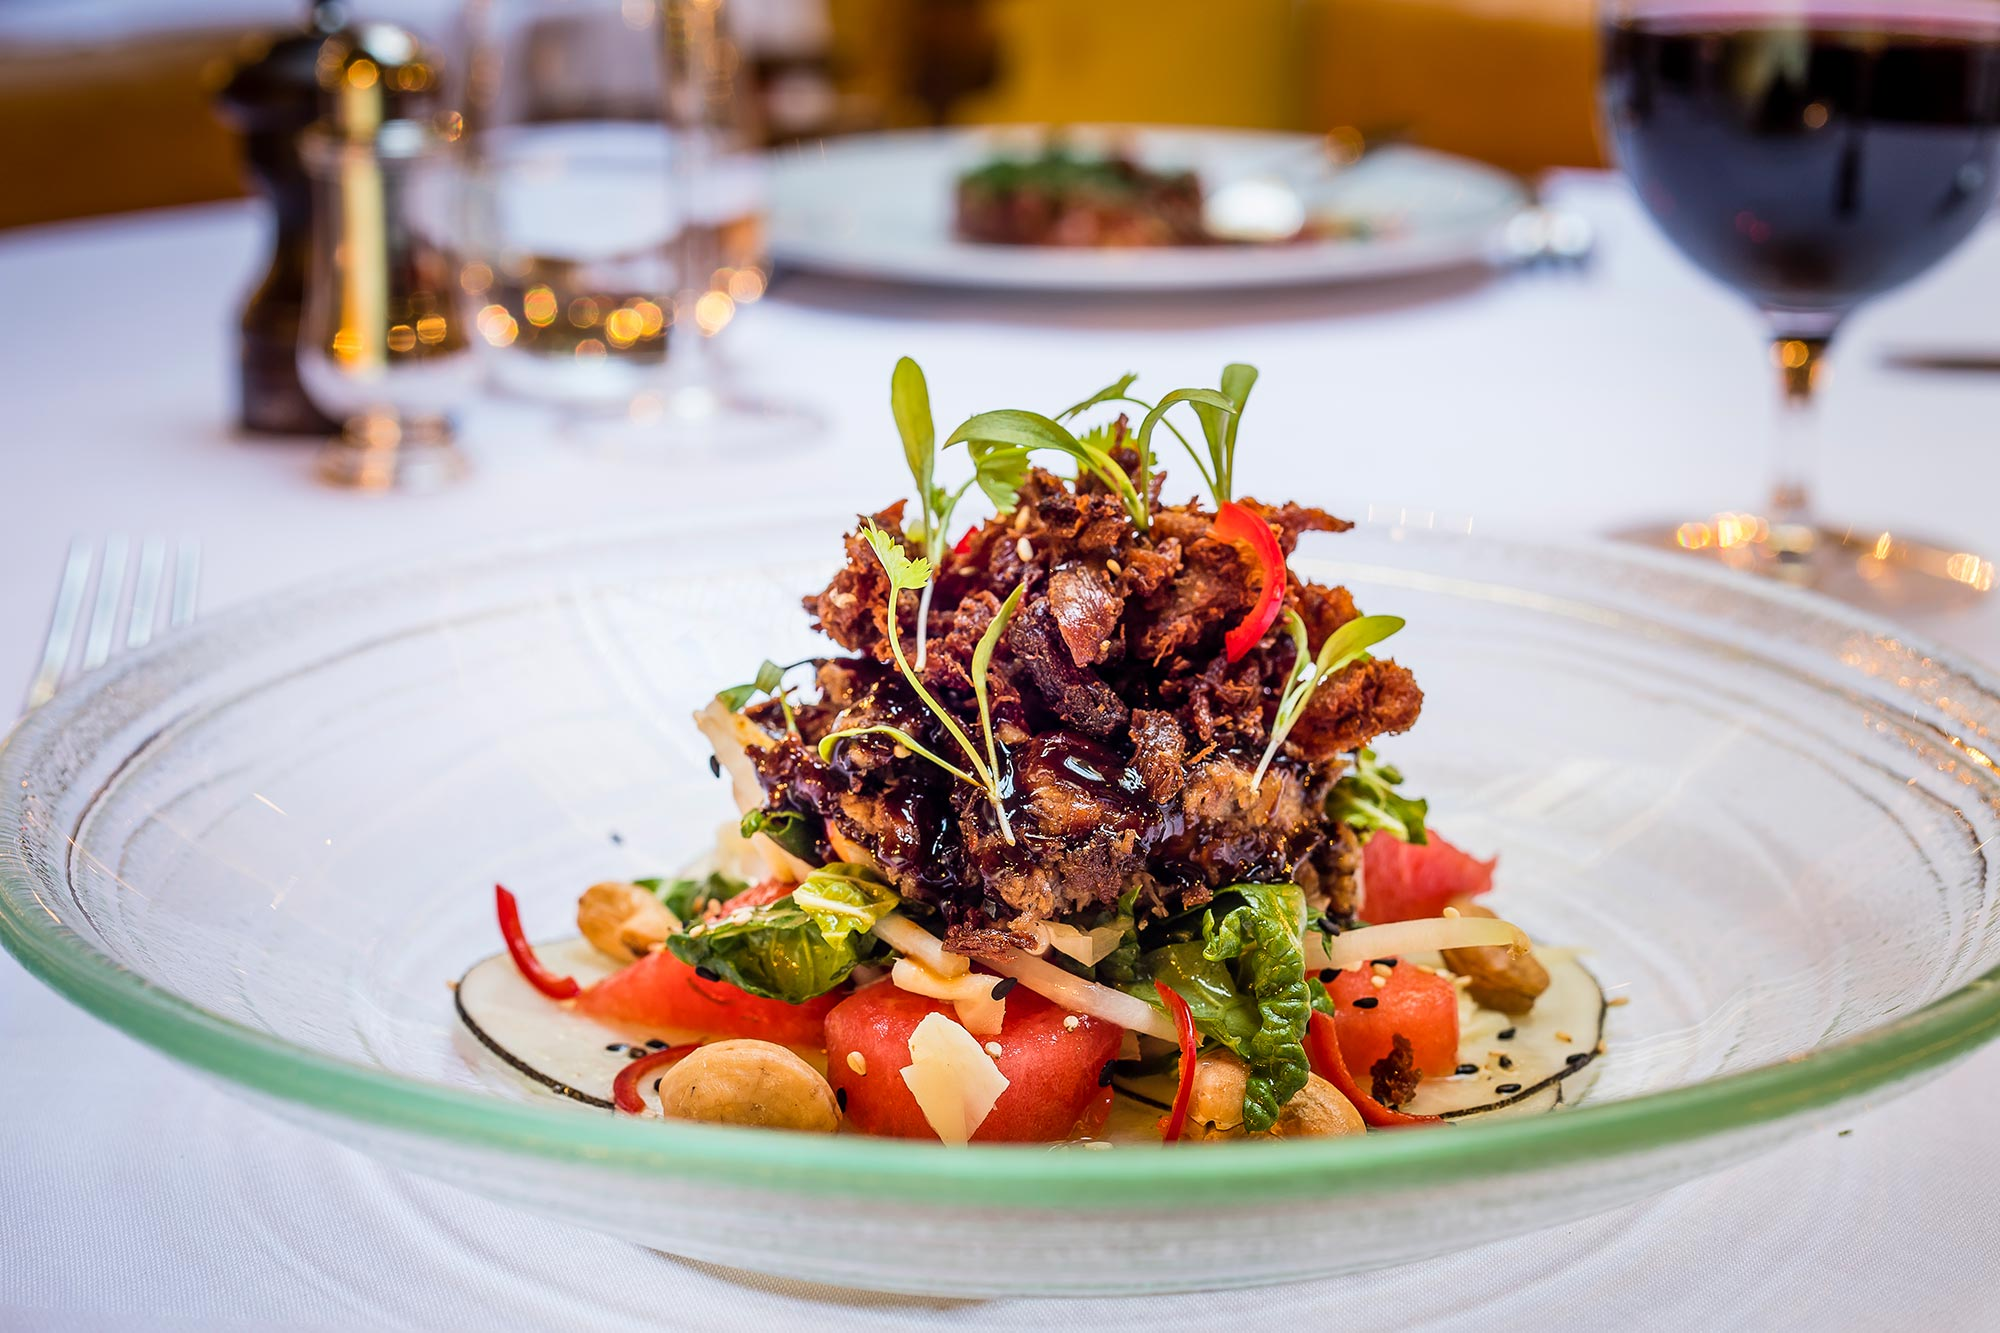 Restaurant in Bath for lunch, The Ivy Bath Brasserie - Crispy Duck Salad, Watermelon and Cashews - The Ivy Bath Brasserie